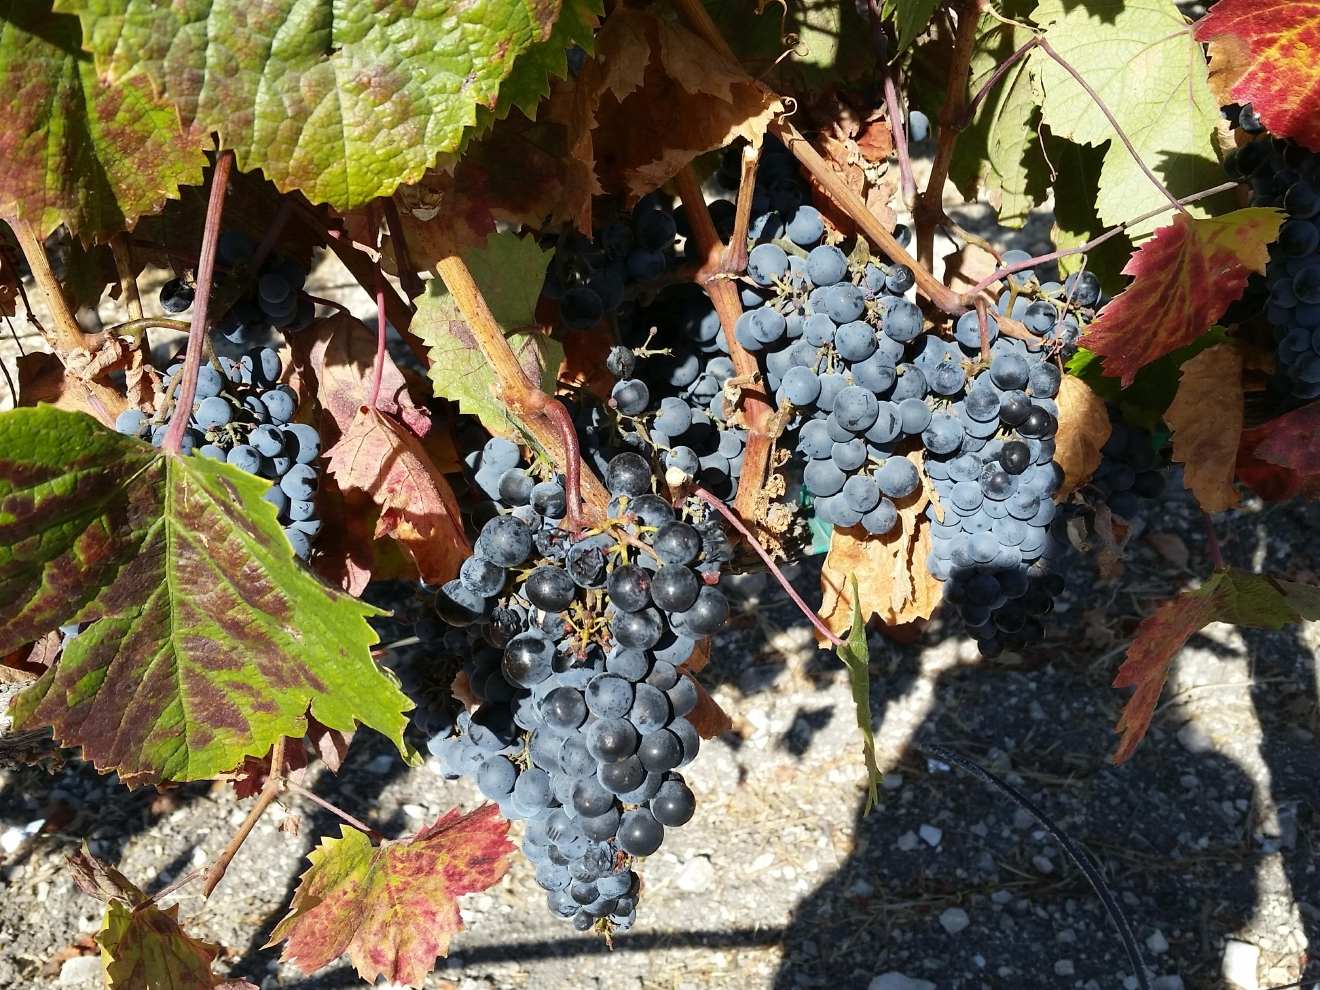 Paso Robles is a different kind of wine region -- the winemakers are collaborative and convivial, not competitive. Two-thirds of producers make five thousand or fewer cases per year, which means if you want to taste many of these wines, you need to get out there. We've got the scoop on the wineries you don't want to miss. (Image: Kelly Magyarics)